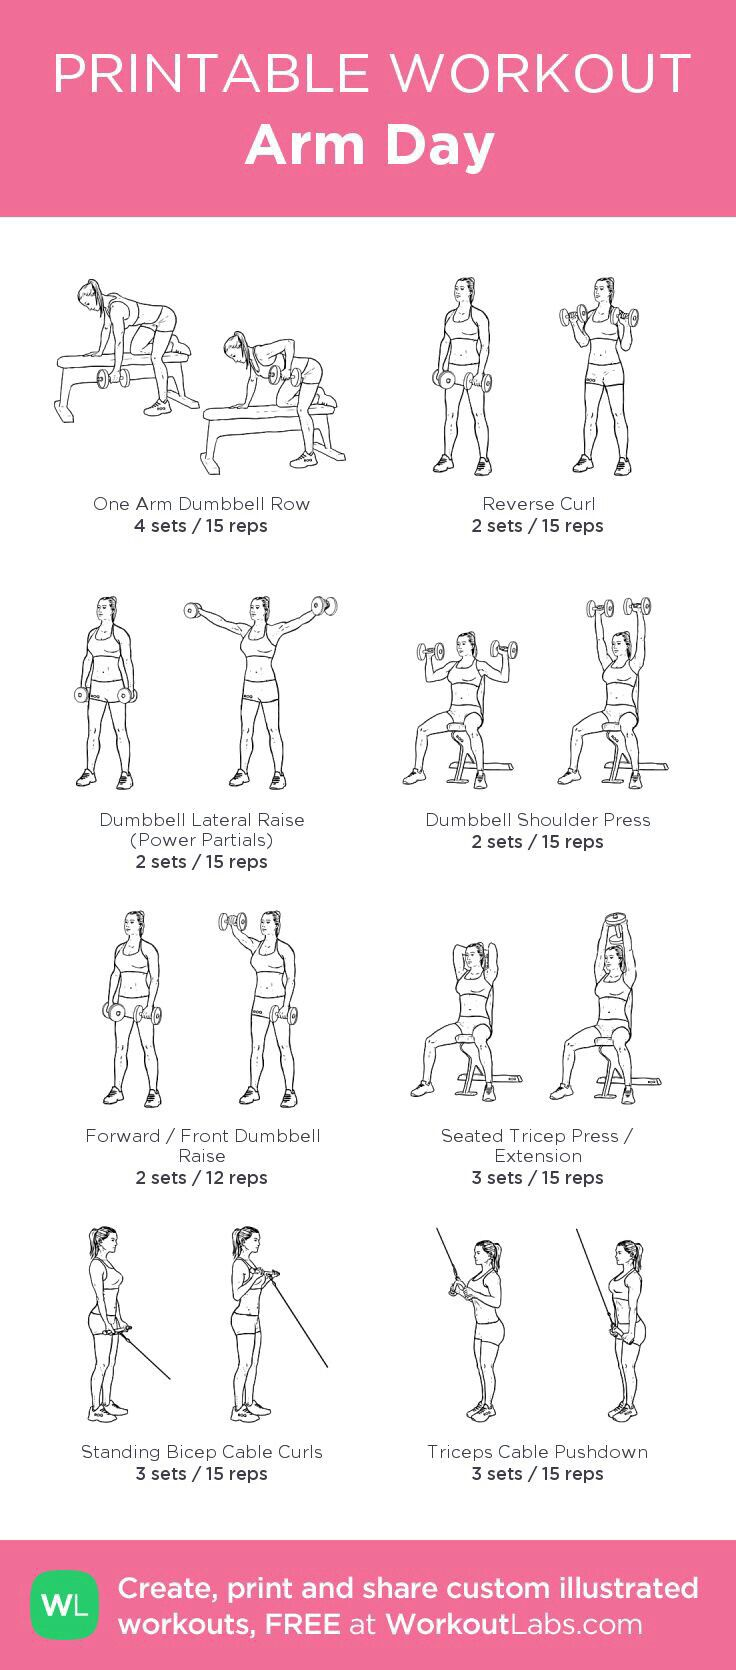 It's just an image of Printable Workouts at Home with regard to full body